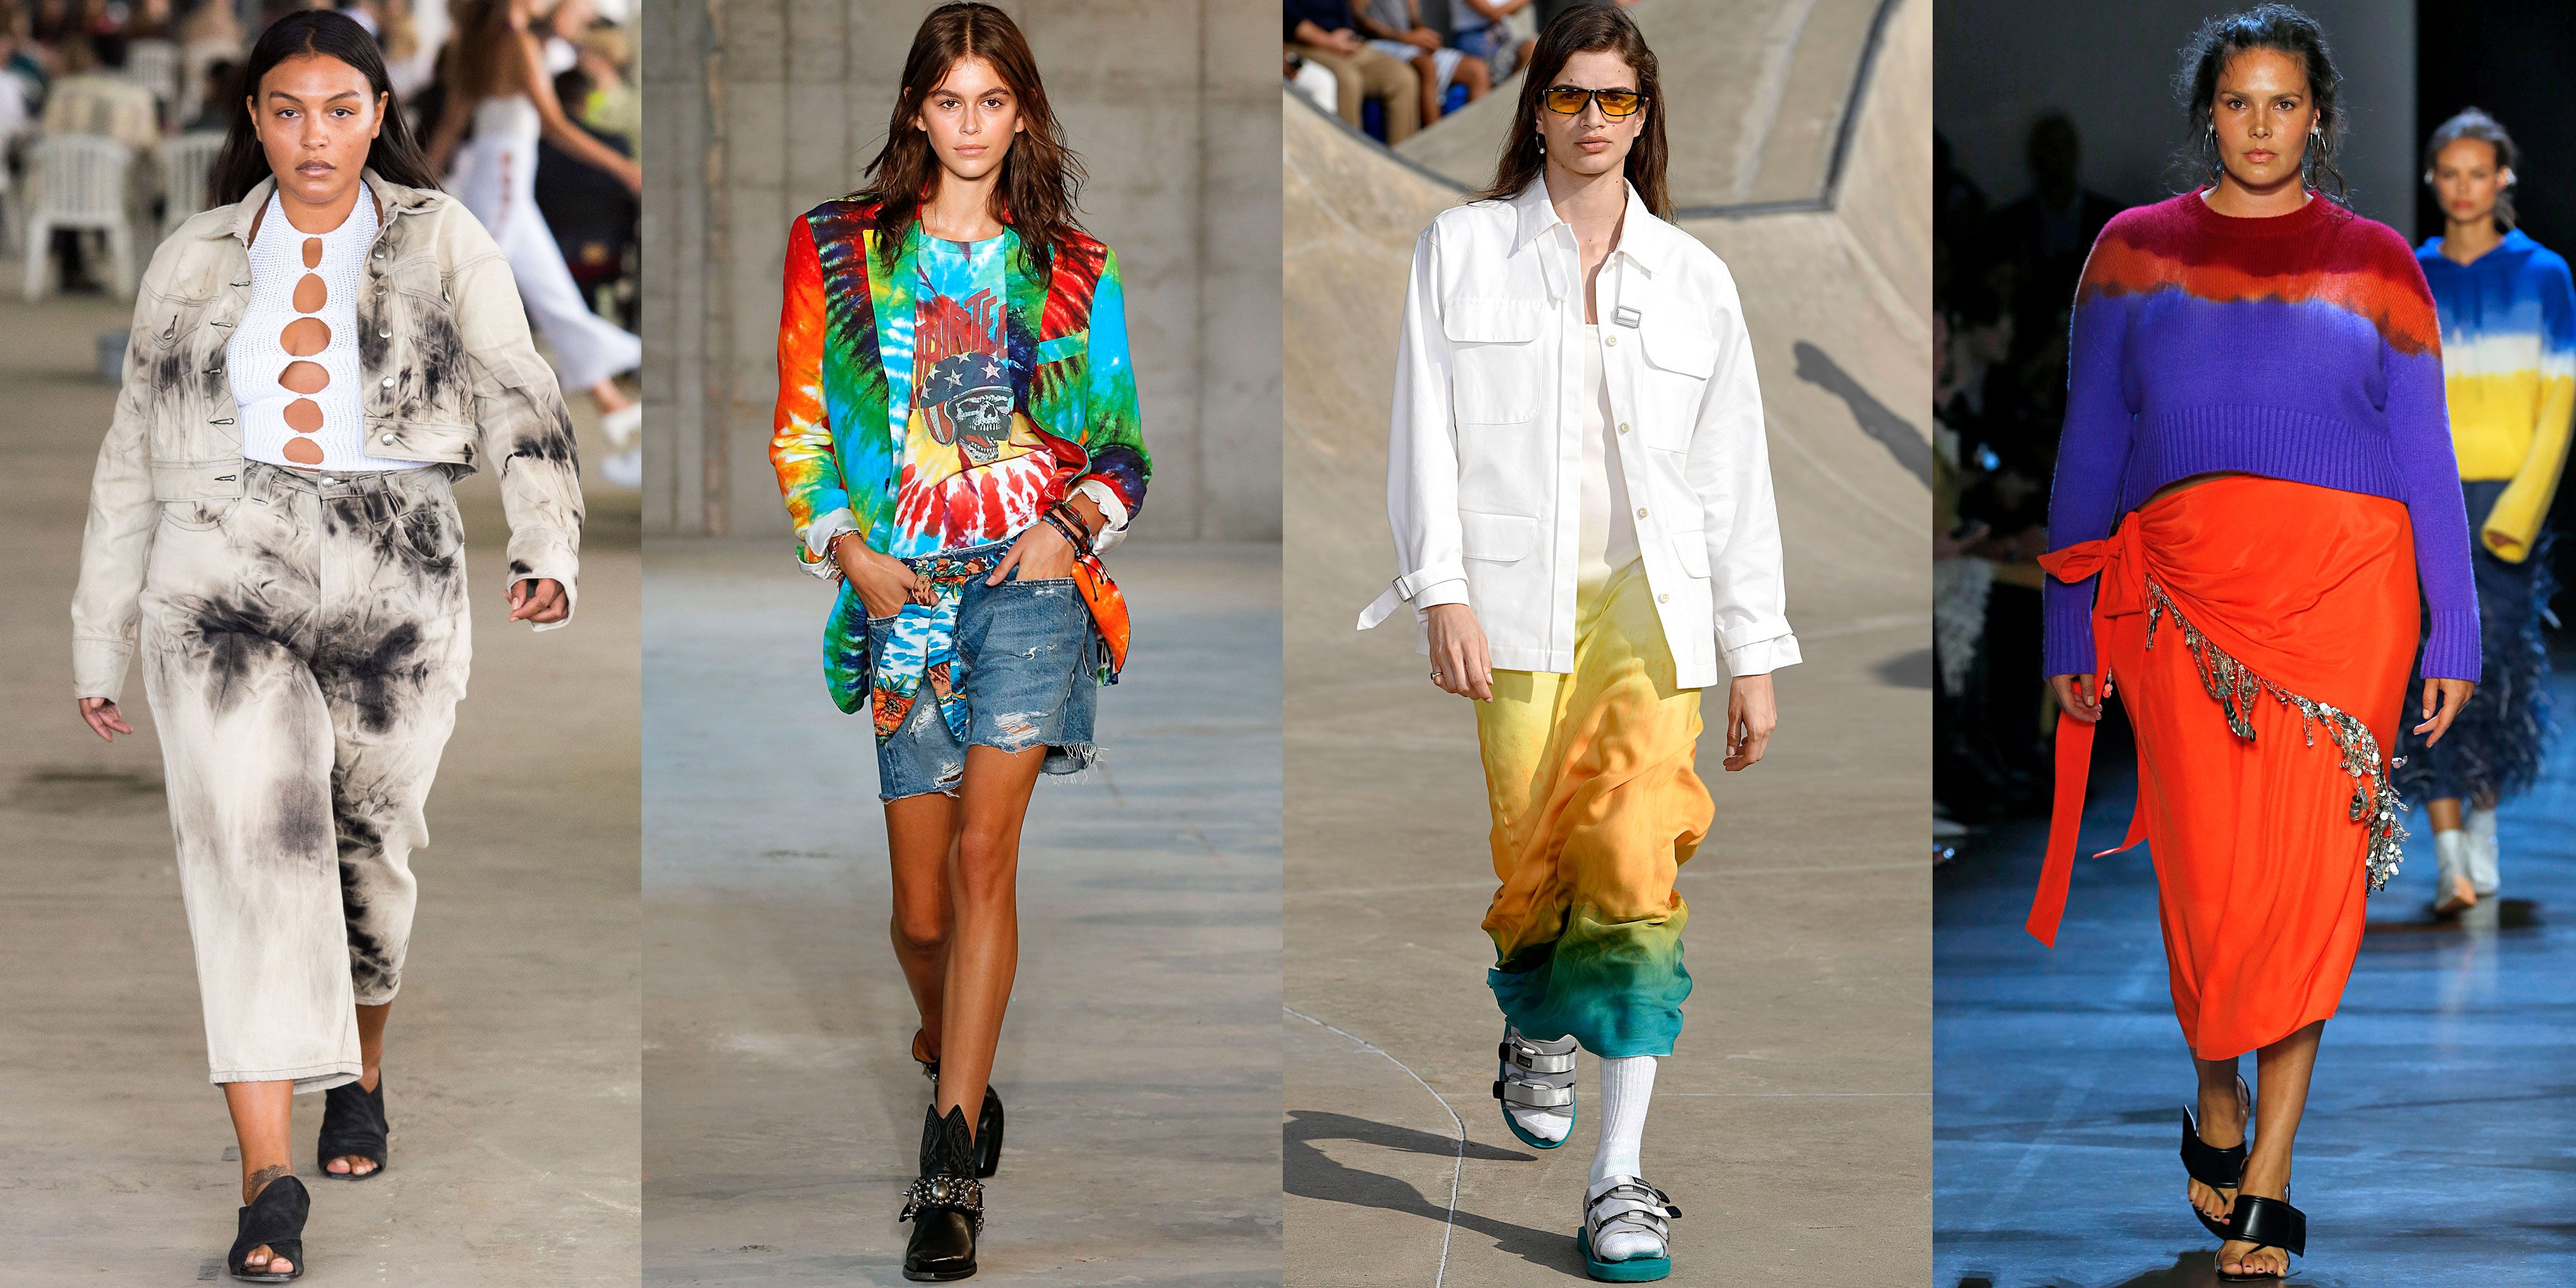 d1353d97418b Spring 2019 Fashion Trends - Spring Clothing Styles to Watch Out For